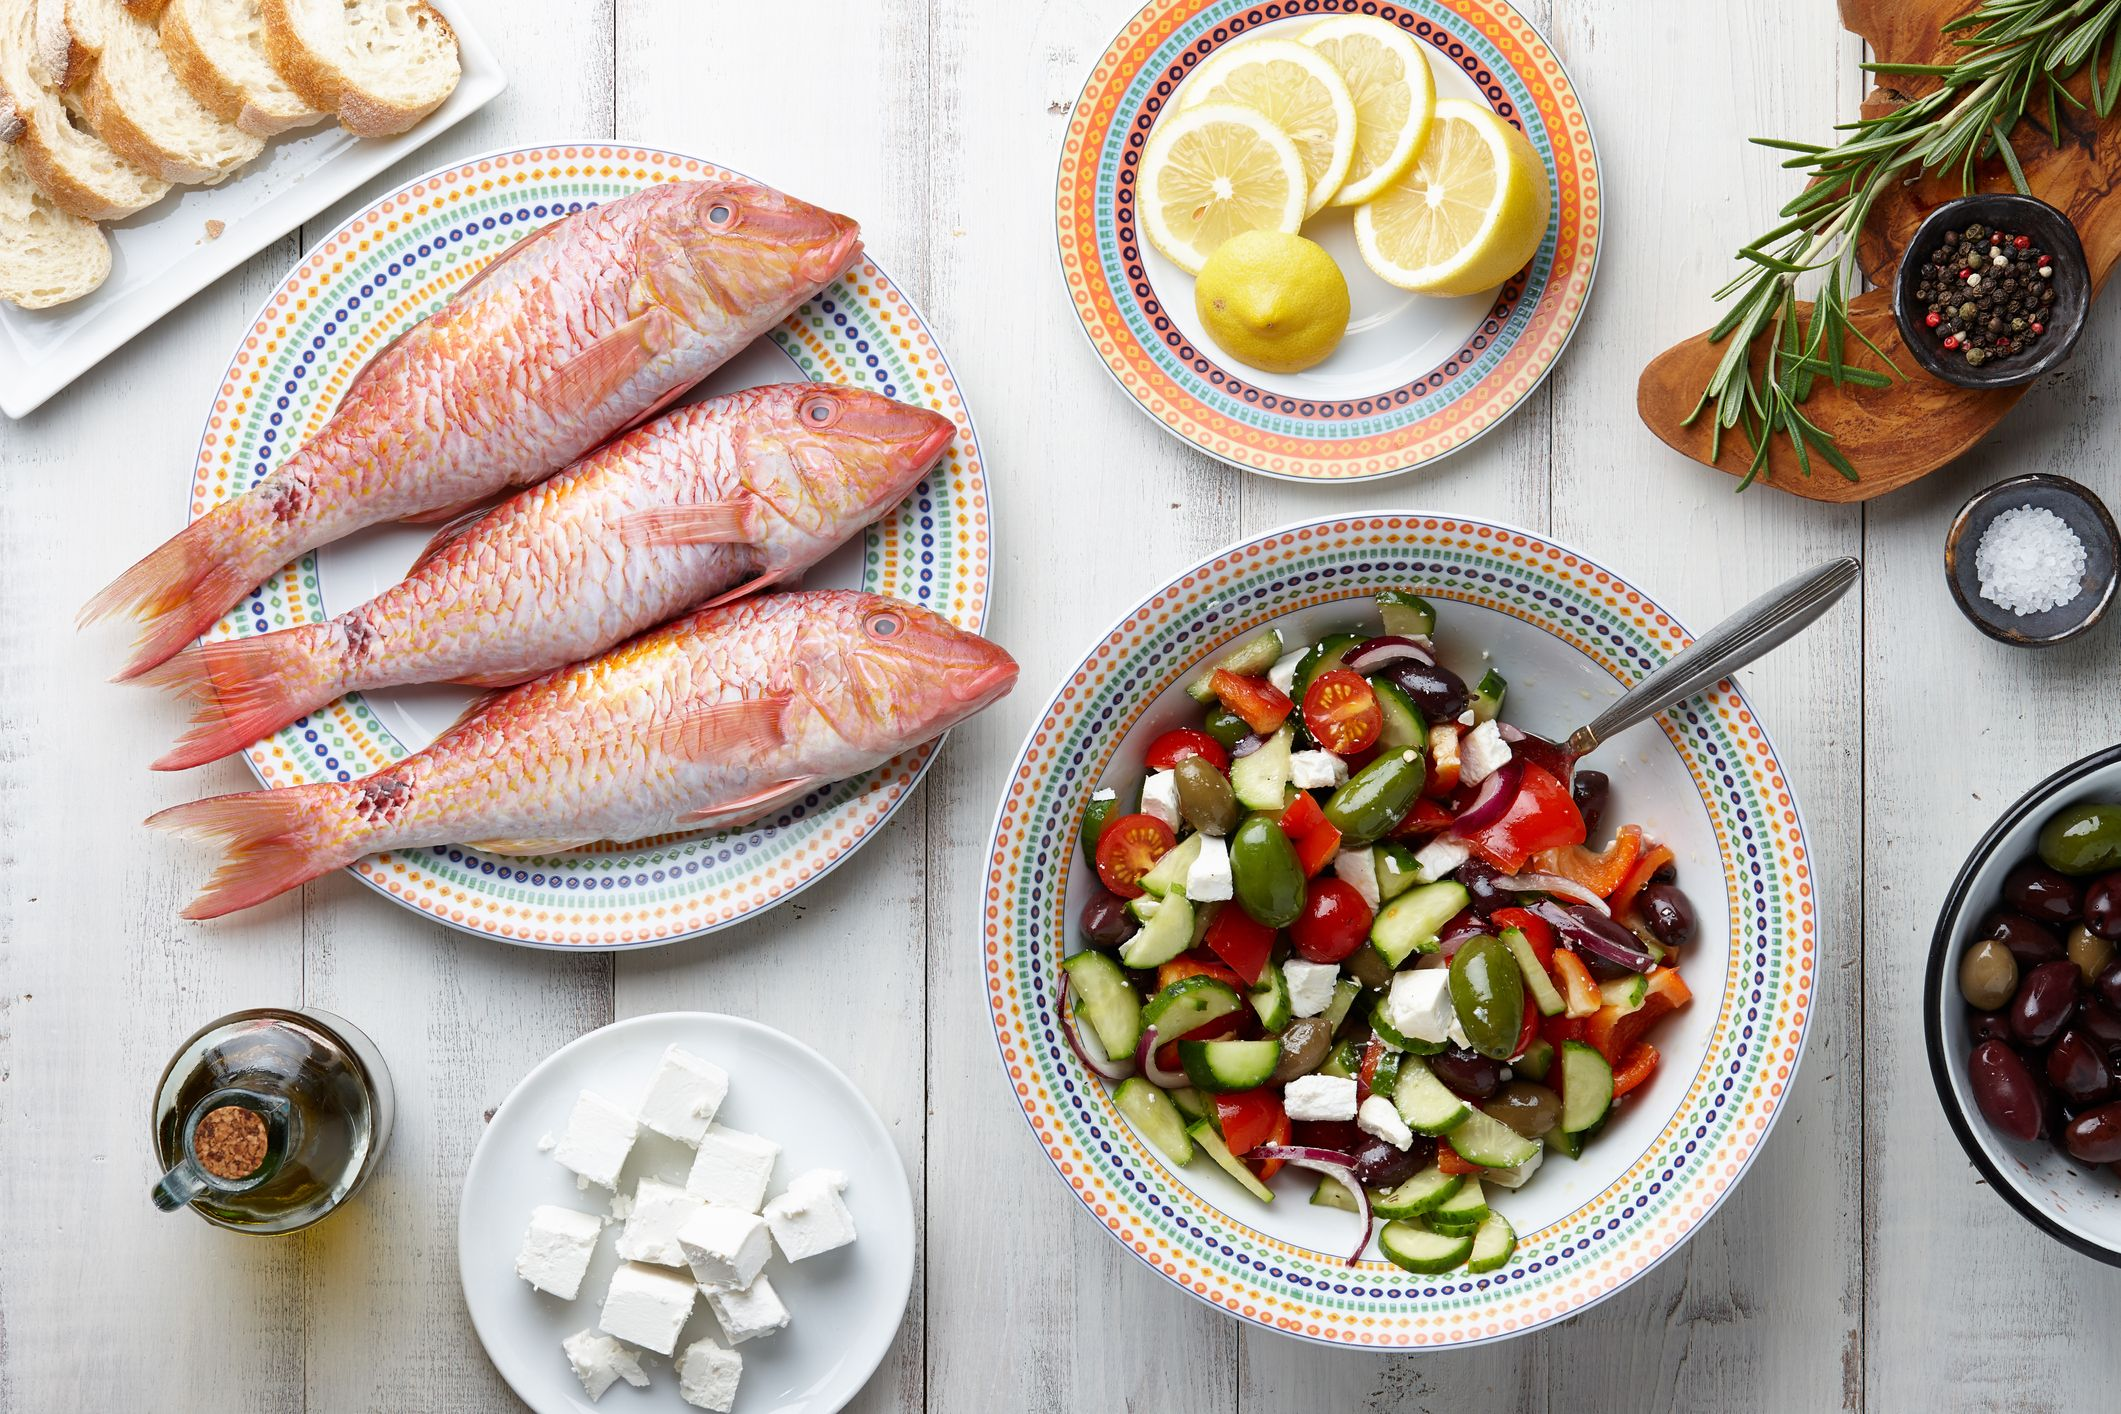 In Lockdown: A Mediterranean diet 'could help reduce depression' – here are 6 mood-boosting meals to try